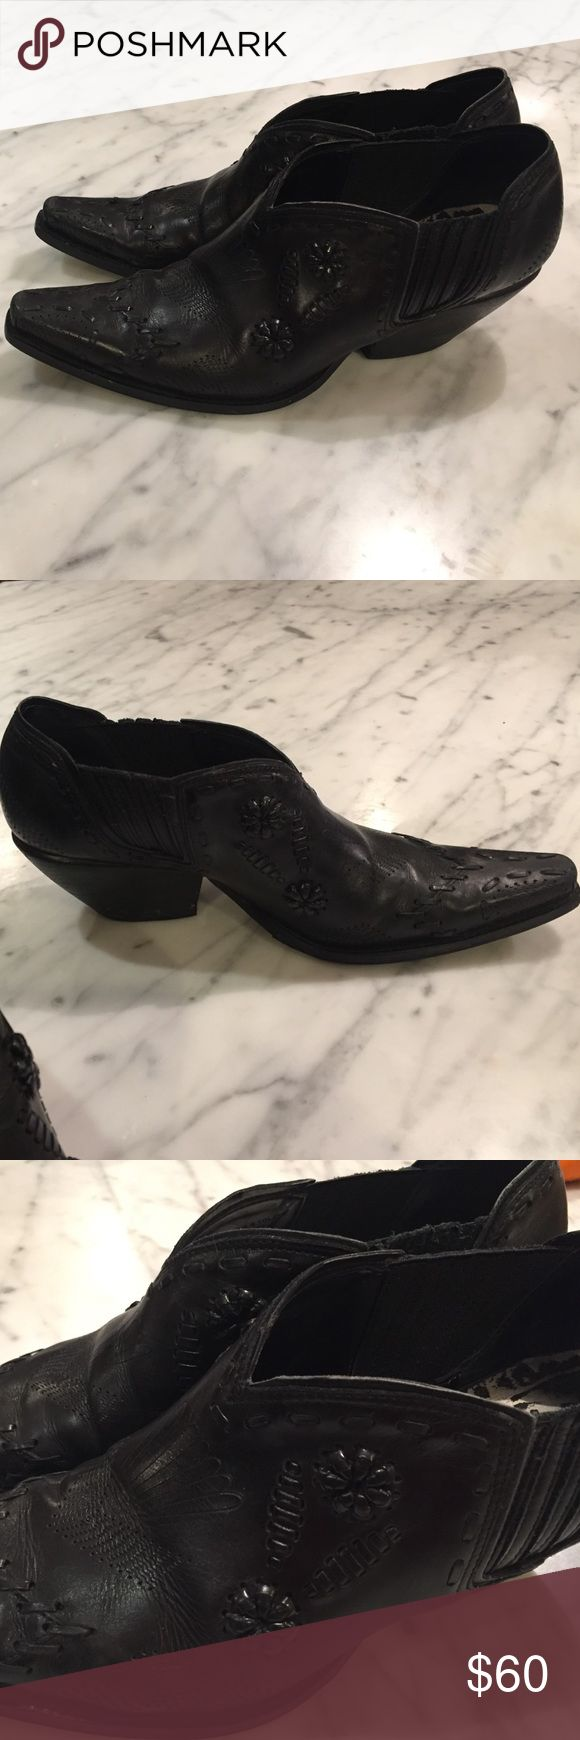 Short cowboy boots These black low boots are fun and very comfortable! Soles were recently replaced and leather has no damage. EUC!! BCB Girls Shoes Ankle Boots & Booties